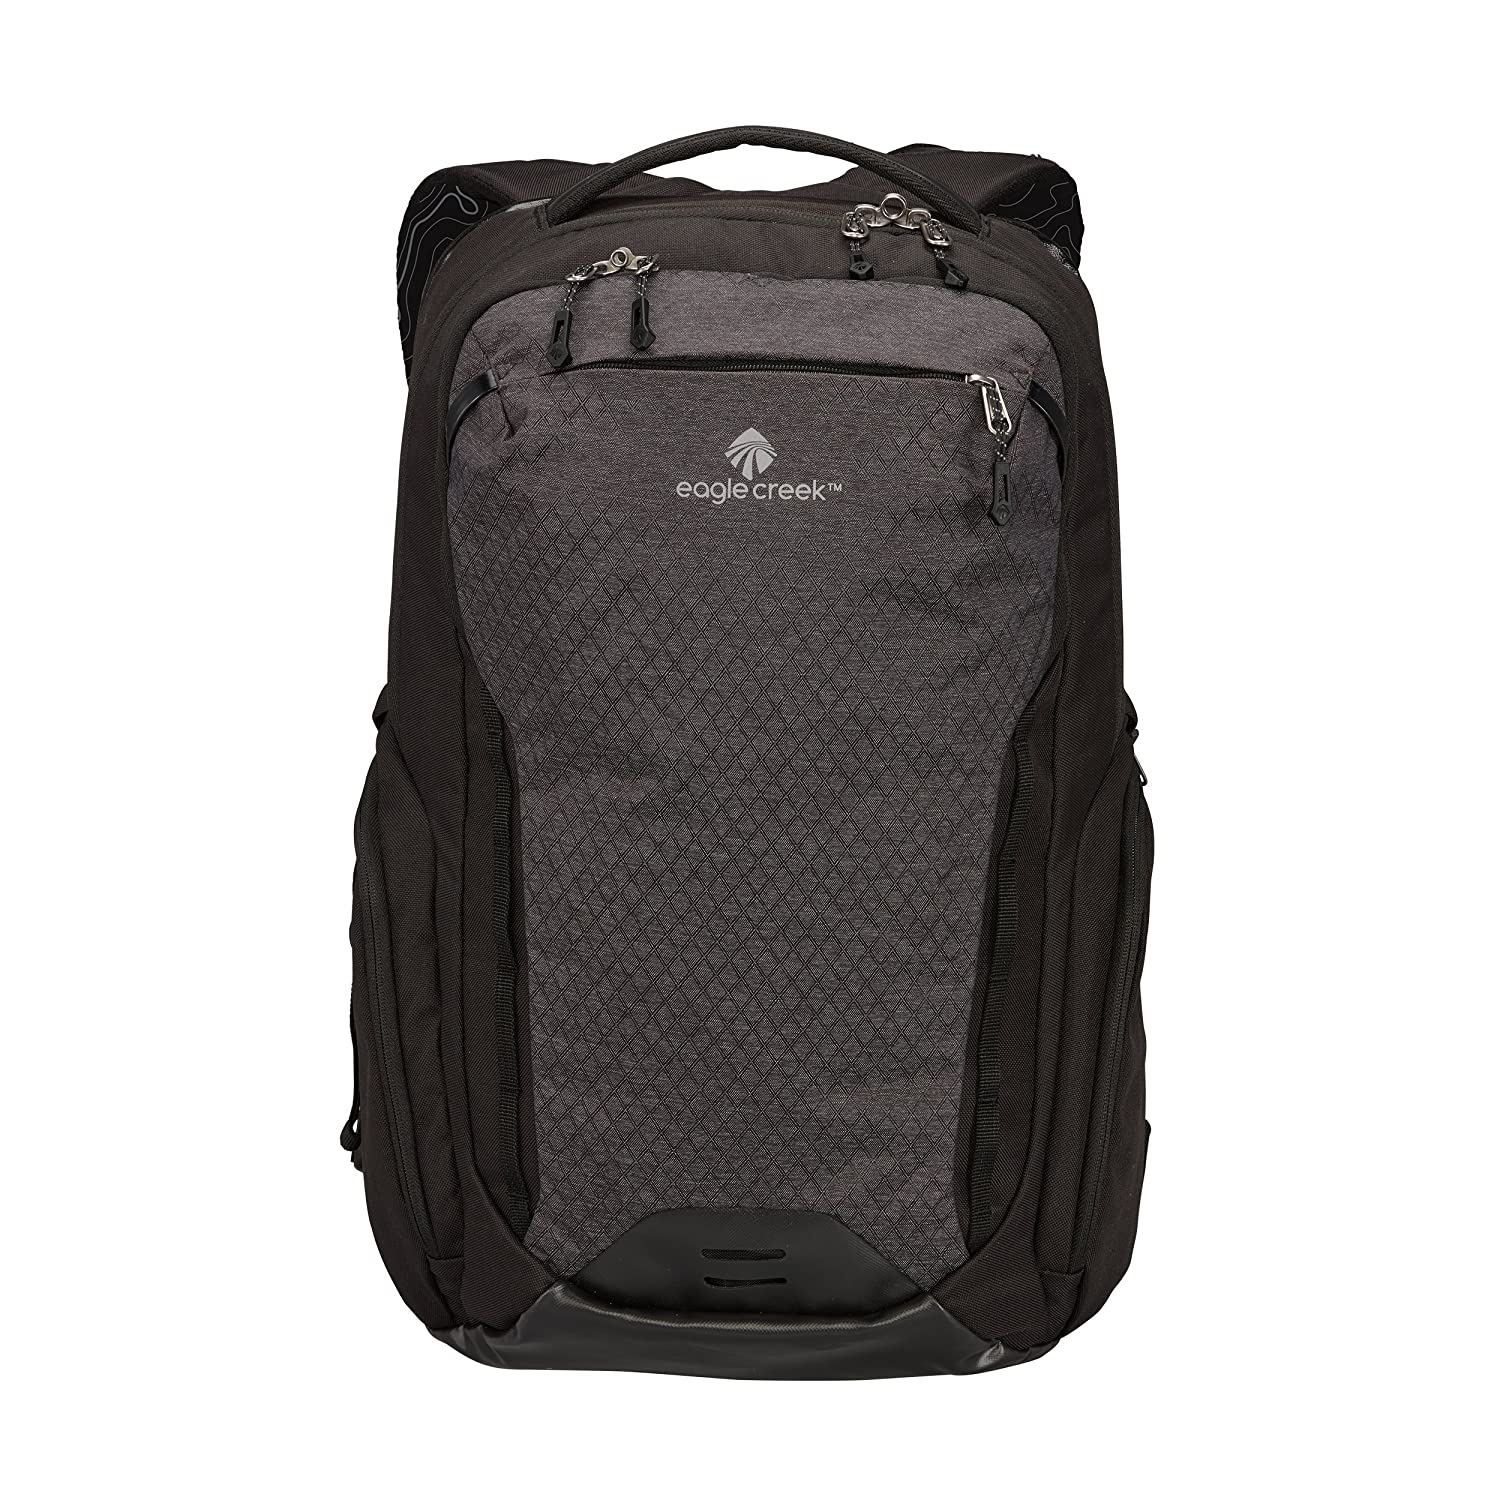 a21945f838 Amazon.com  Eagle Creek Wayfinder 40L Backpack-multiuse-17in Laptop Hidden  Tech Pocket Carry-On Luggage